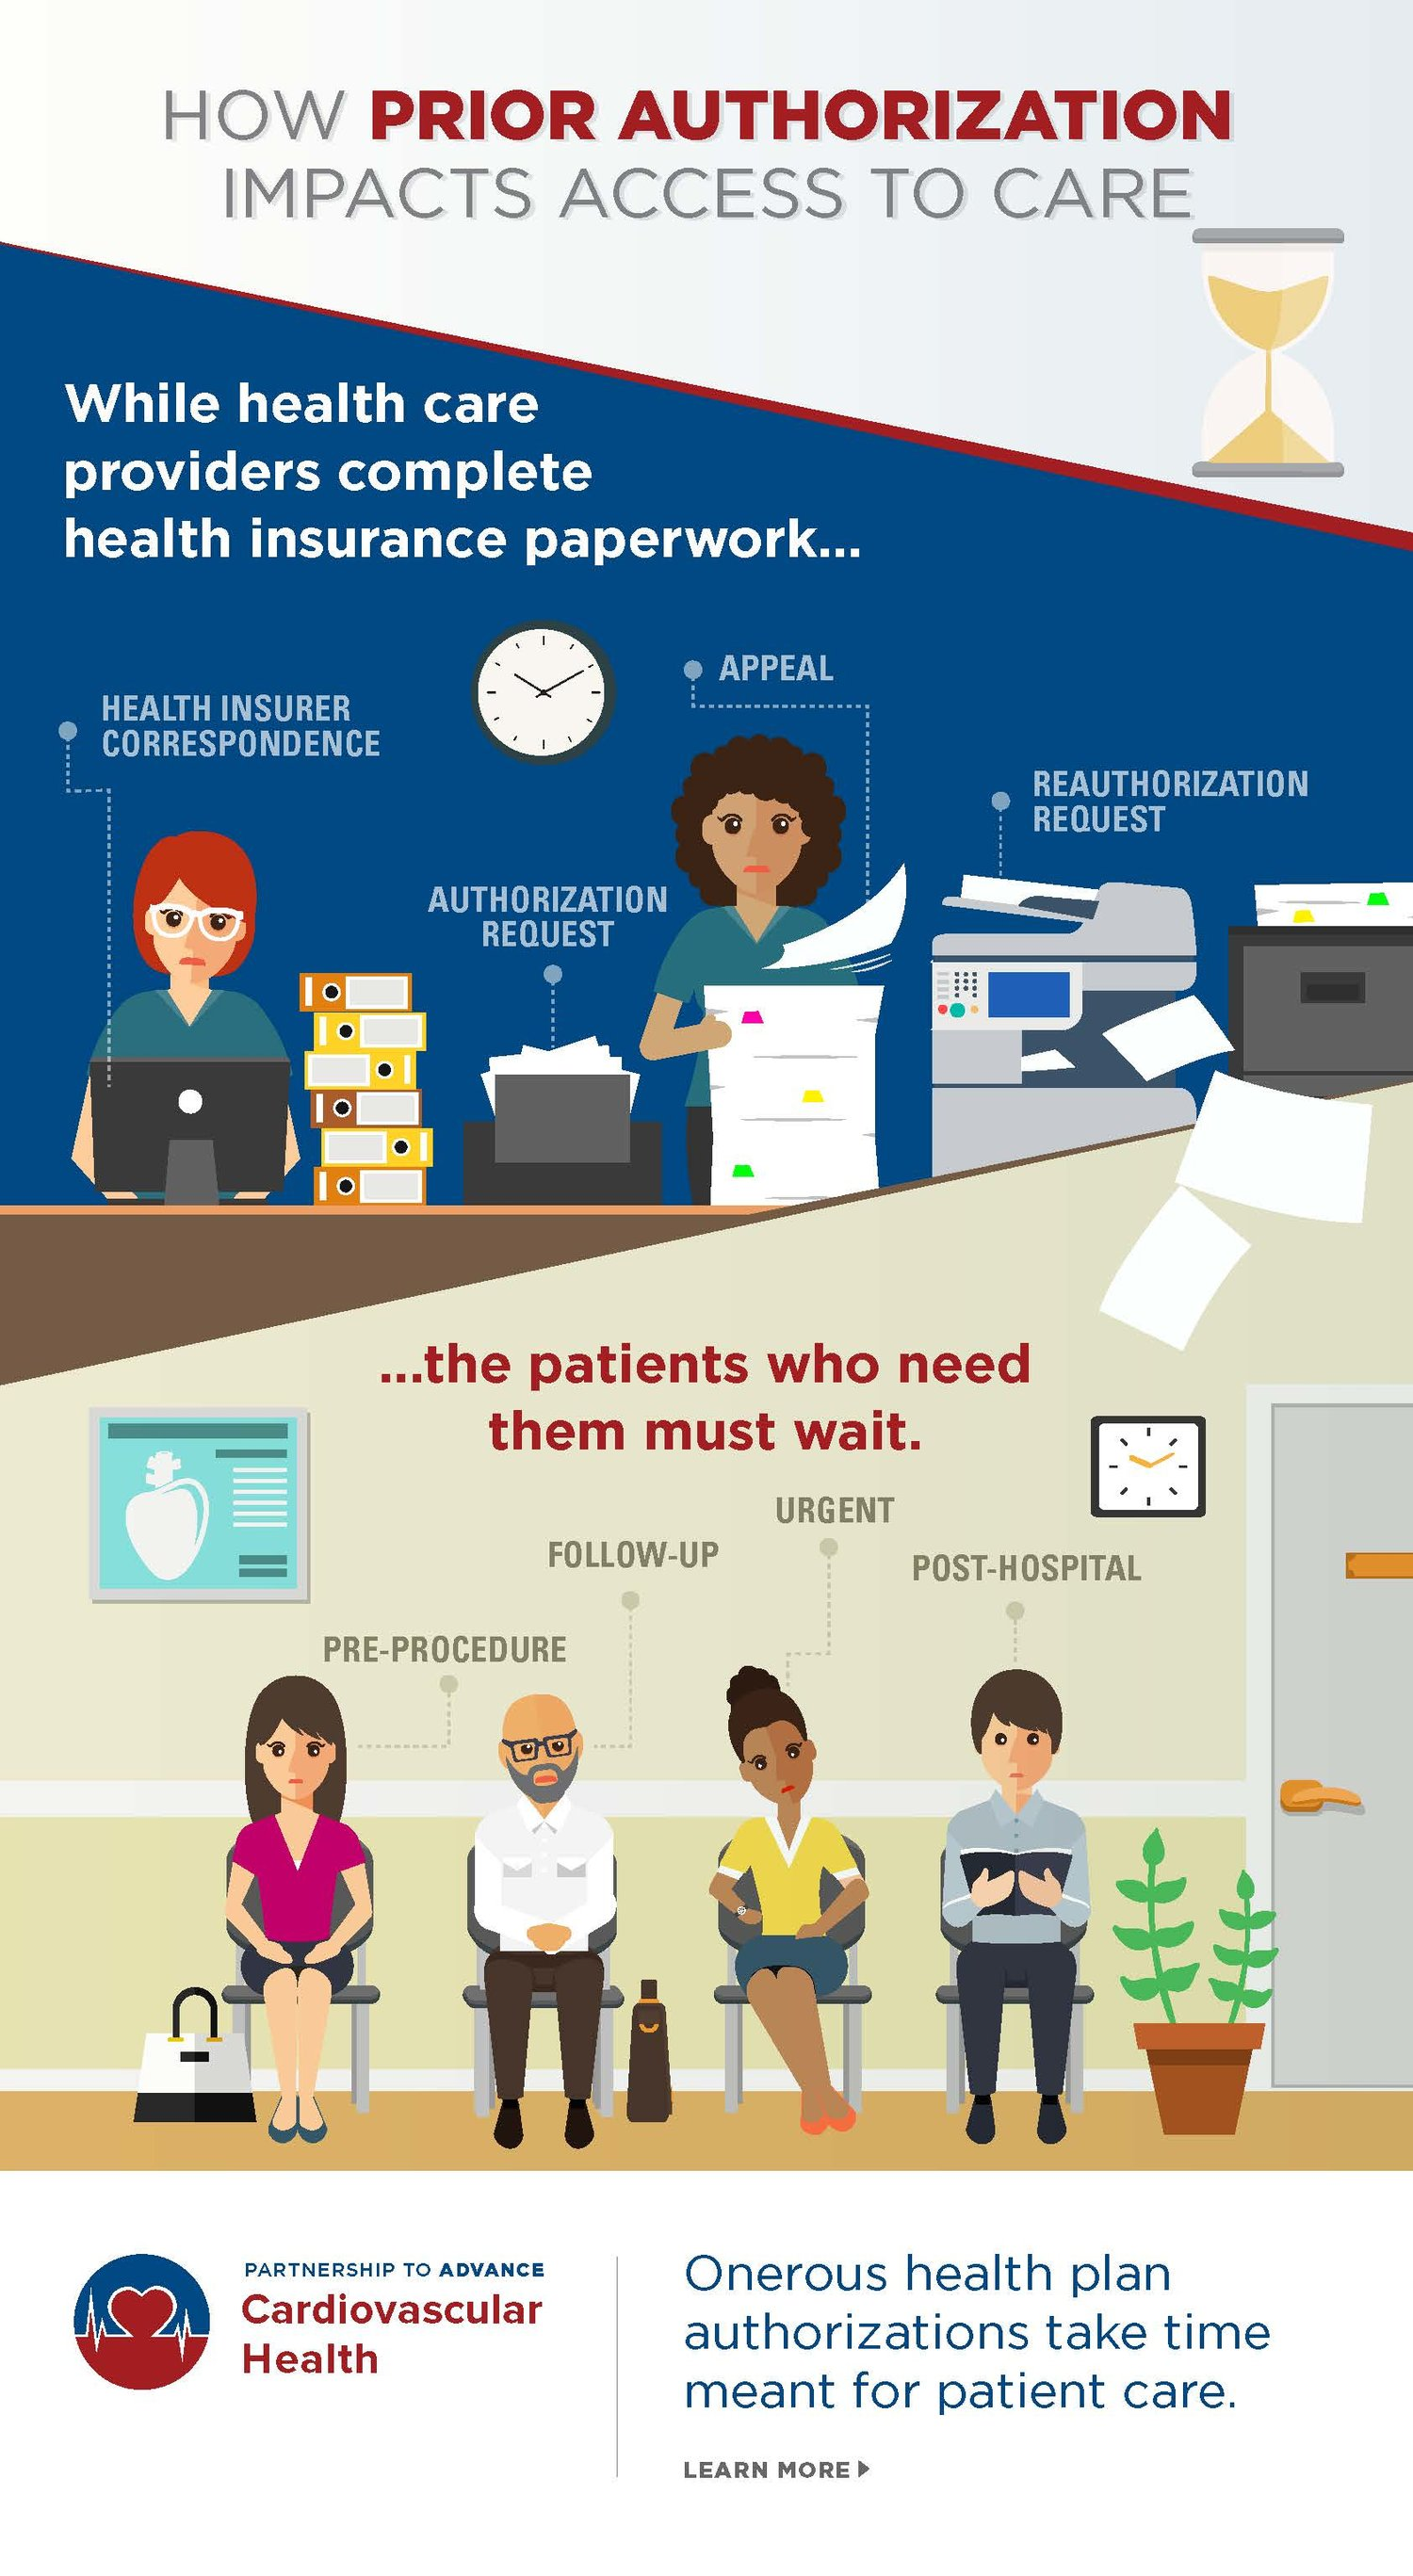 How Prior Authorization Impacts Access to Care